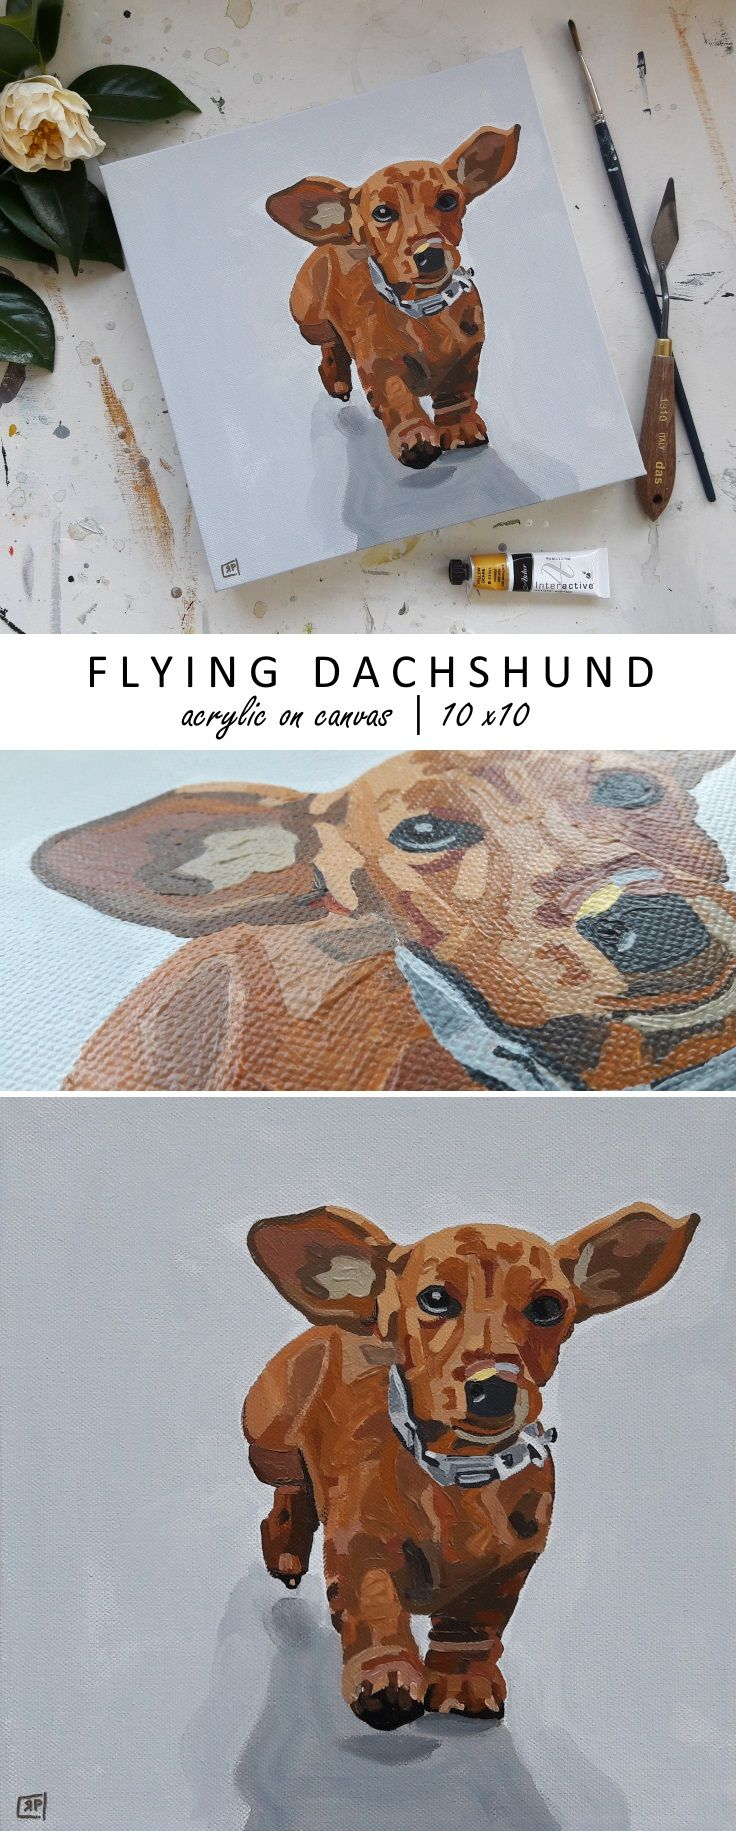 """Buy Paintings Online. Flying Dachshund Dog Painting. Acrylic on Canvas Painting 10 x 10"""" by Rebecca Potter. July 2017 www.rebeccapotterart.com"""